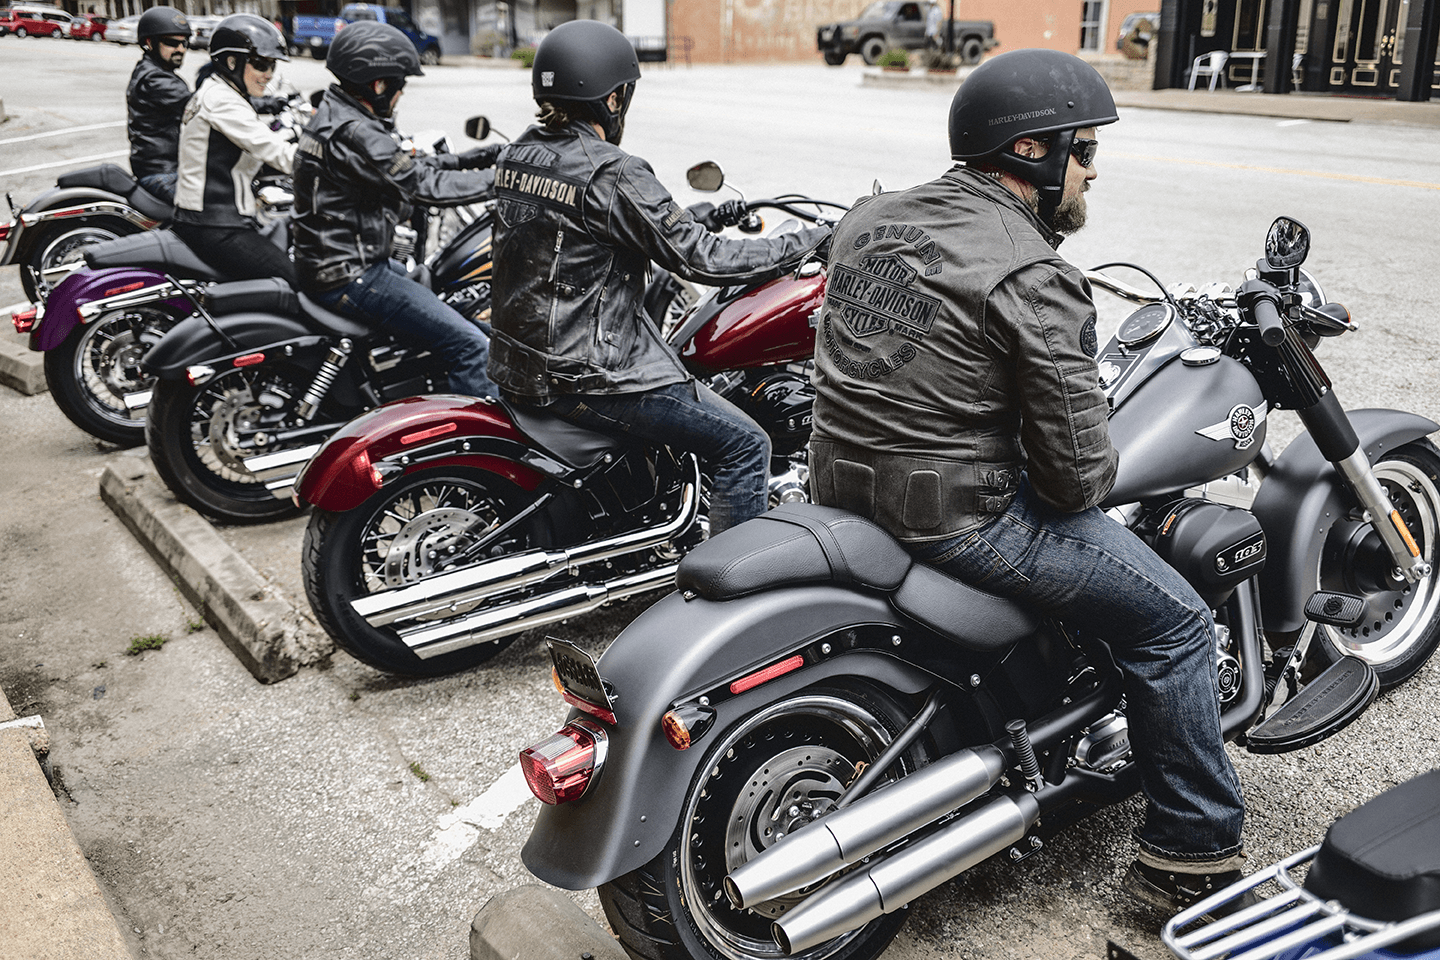 Motorcycle Riding Courses Available at Adirondack H-D